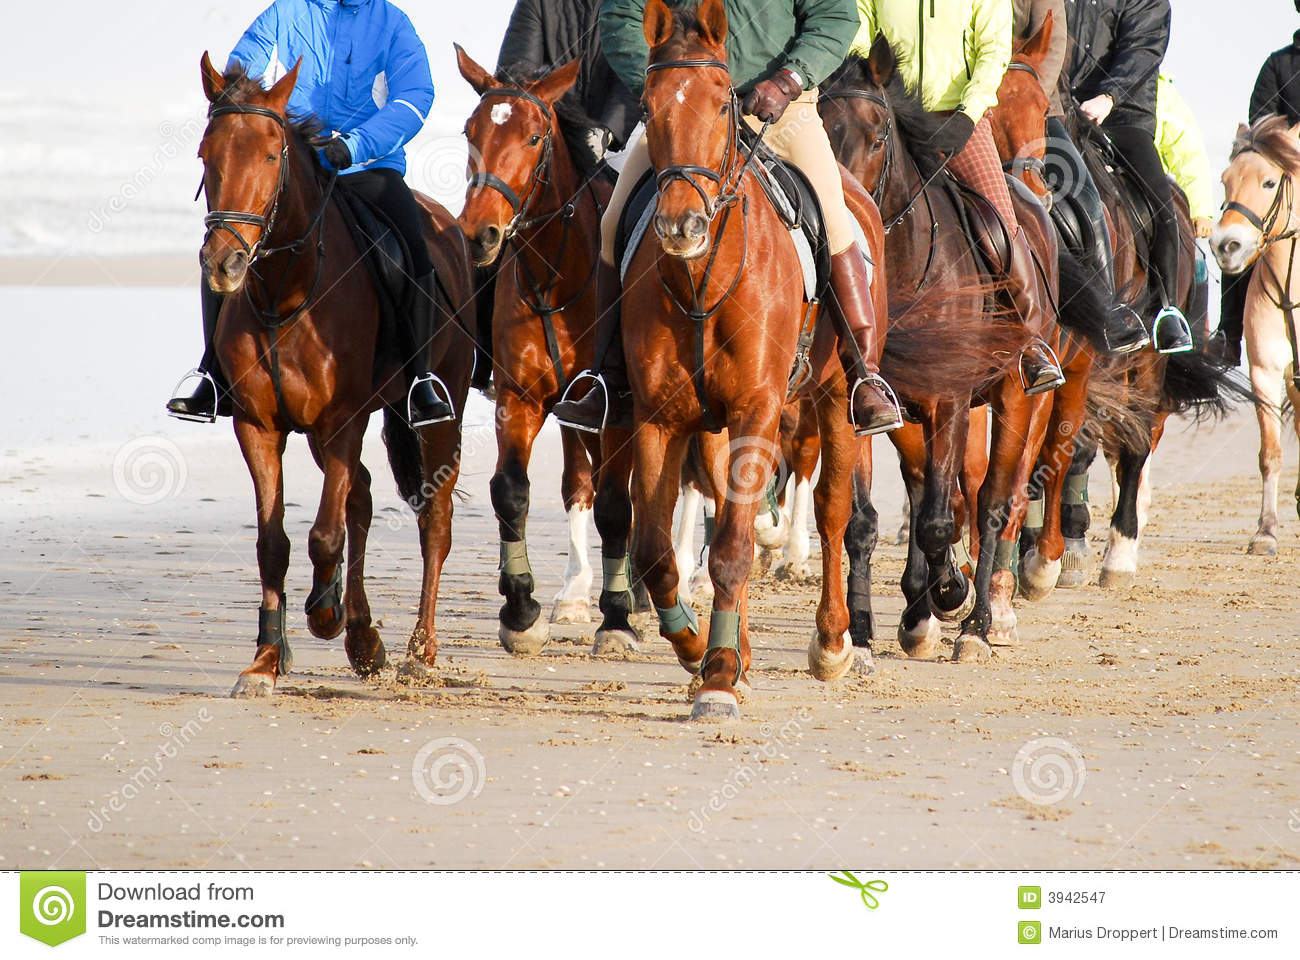 Frontview group horseback riding on the beach